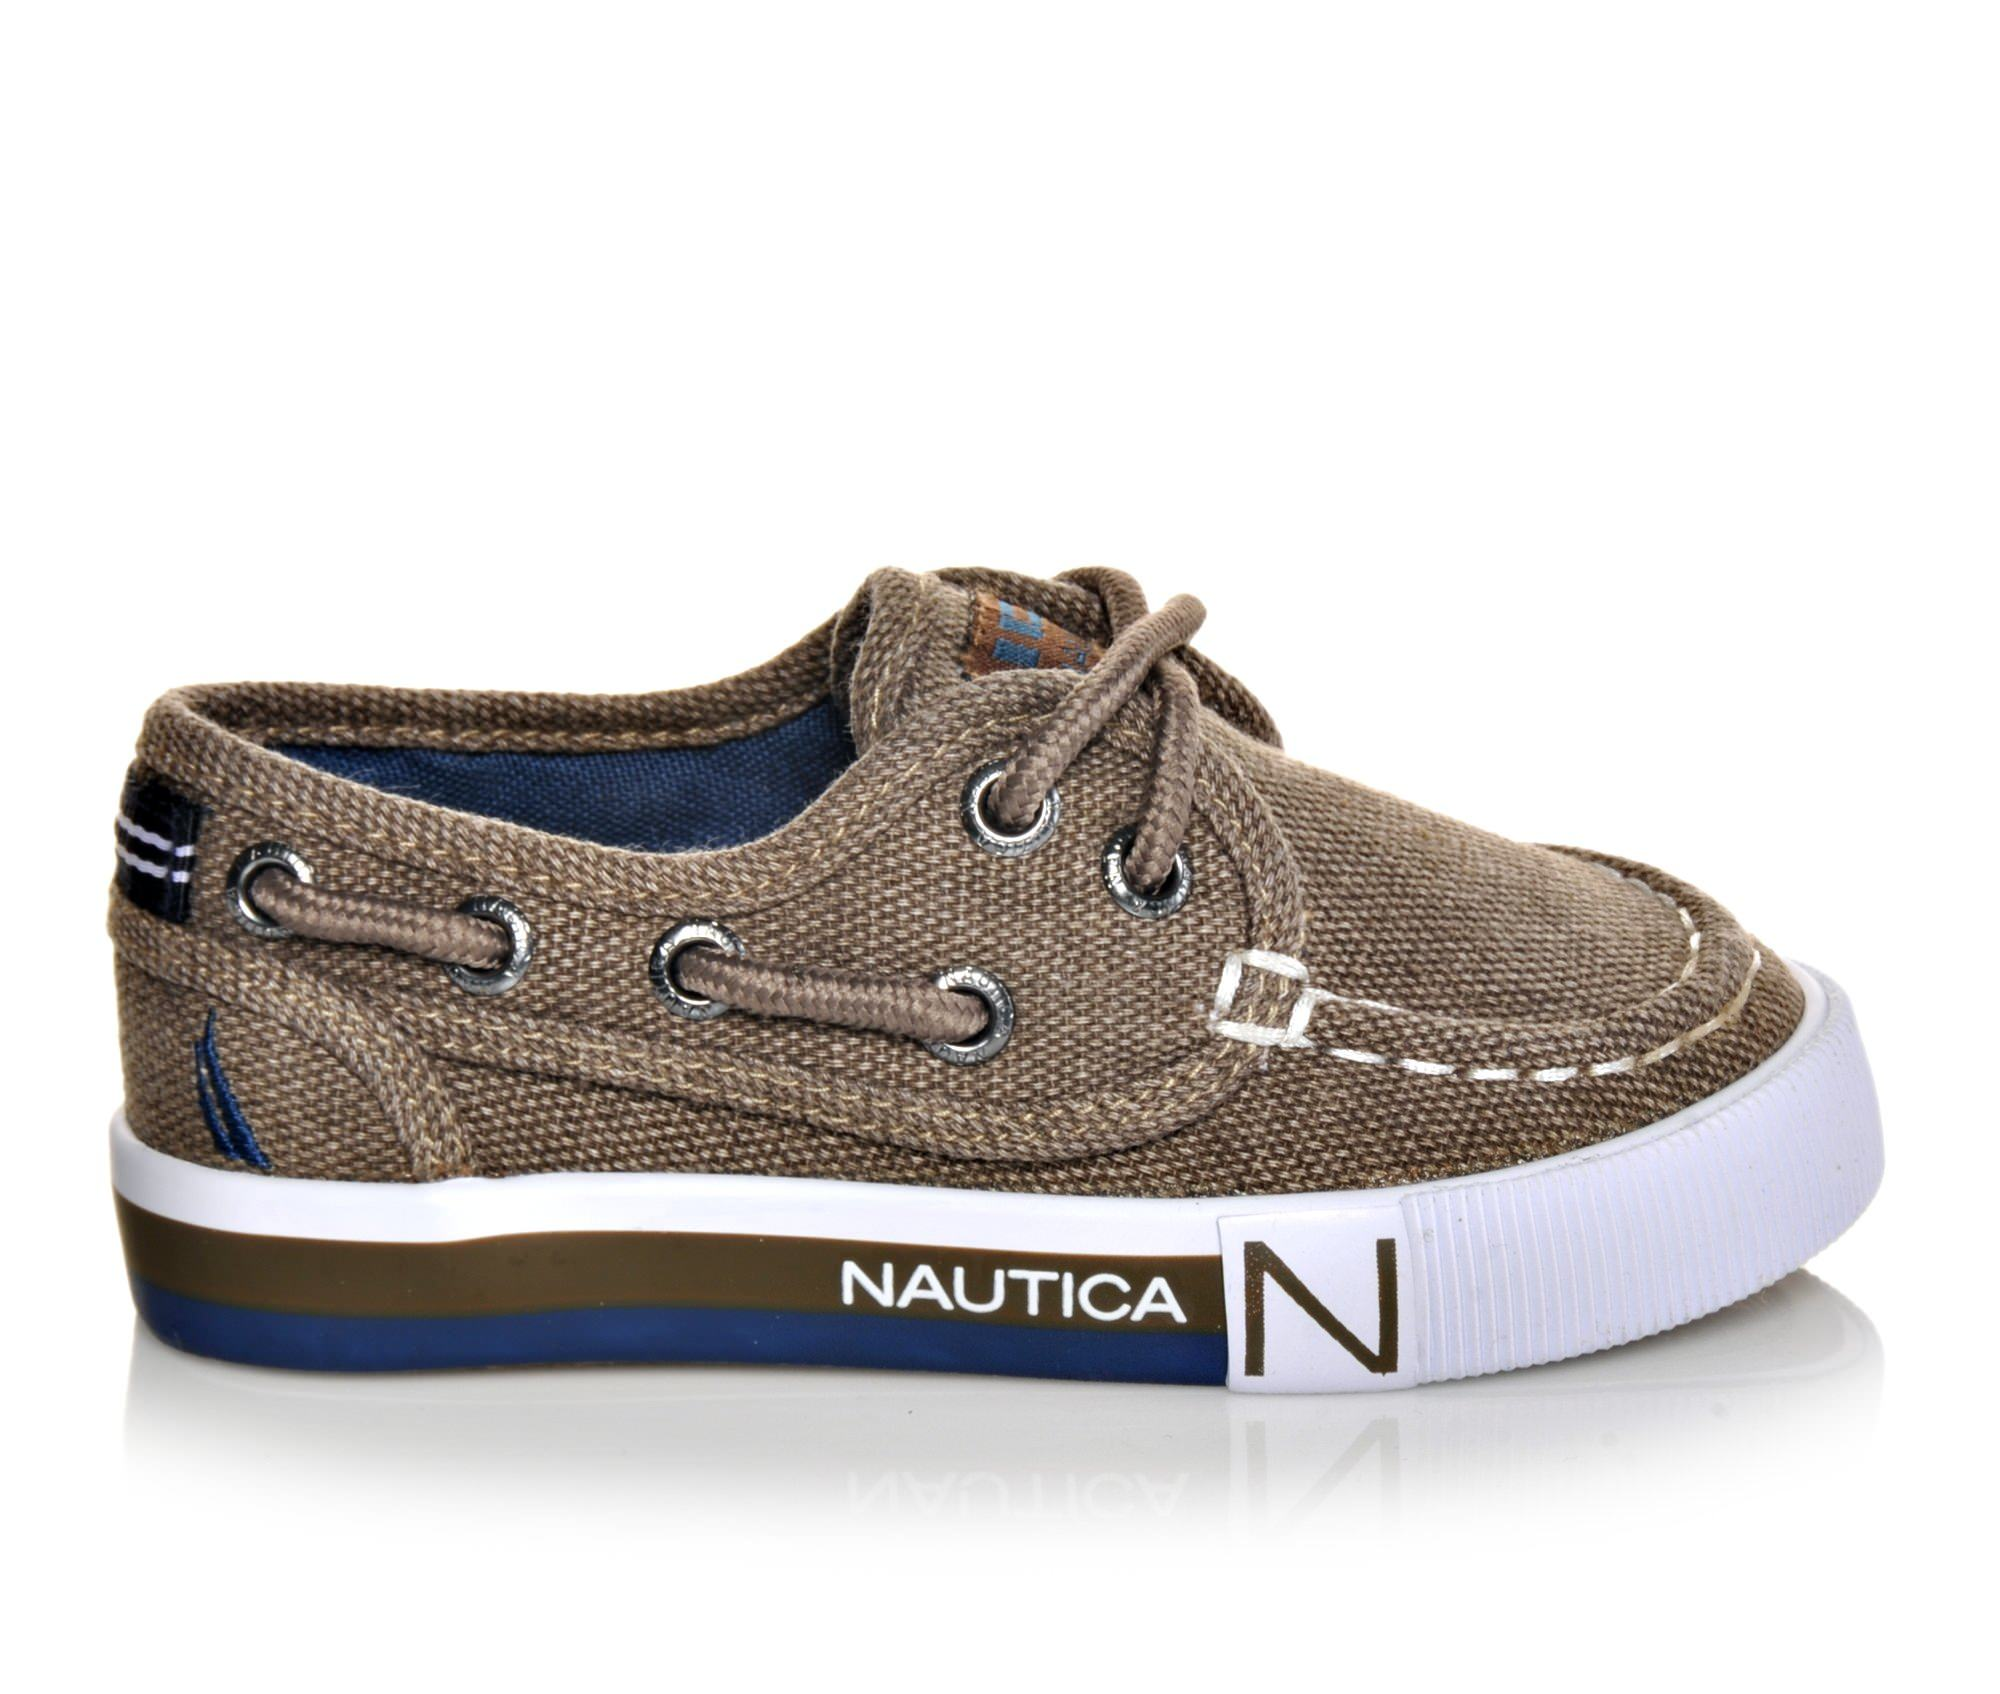 Boys' Nautica Spinnaker Toddler Boat Shoes (Brown)